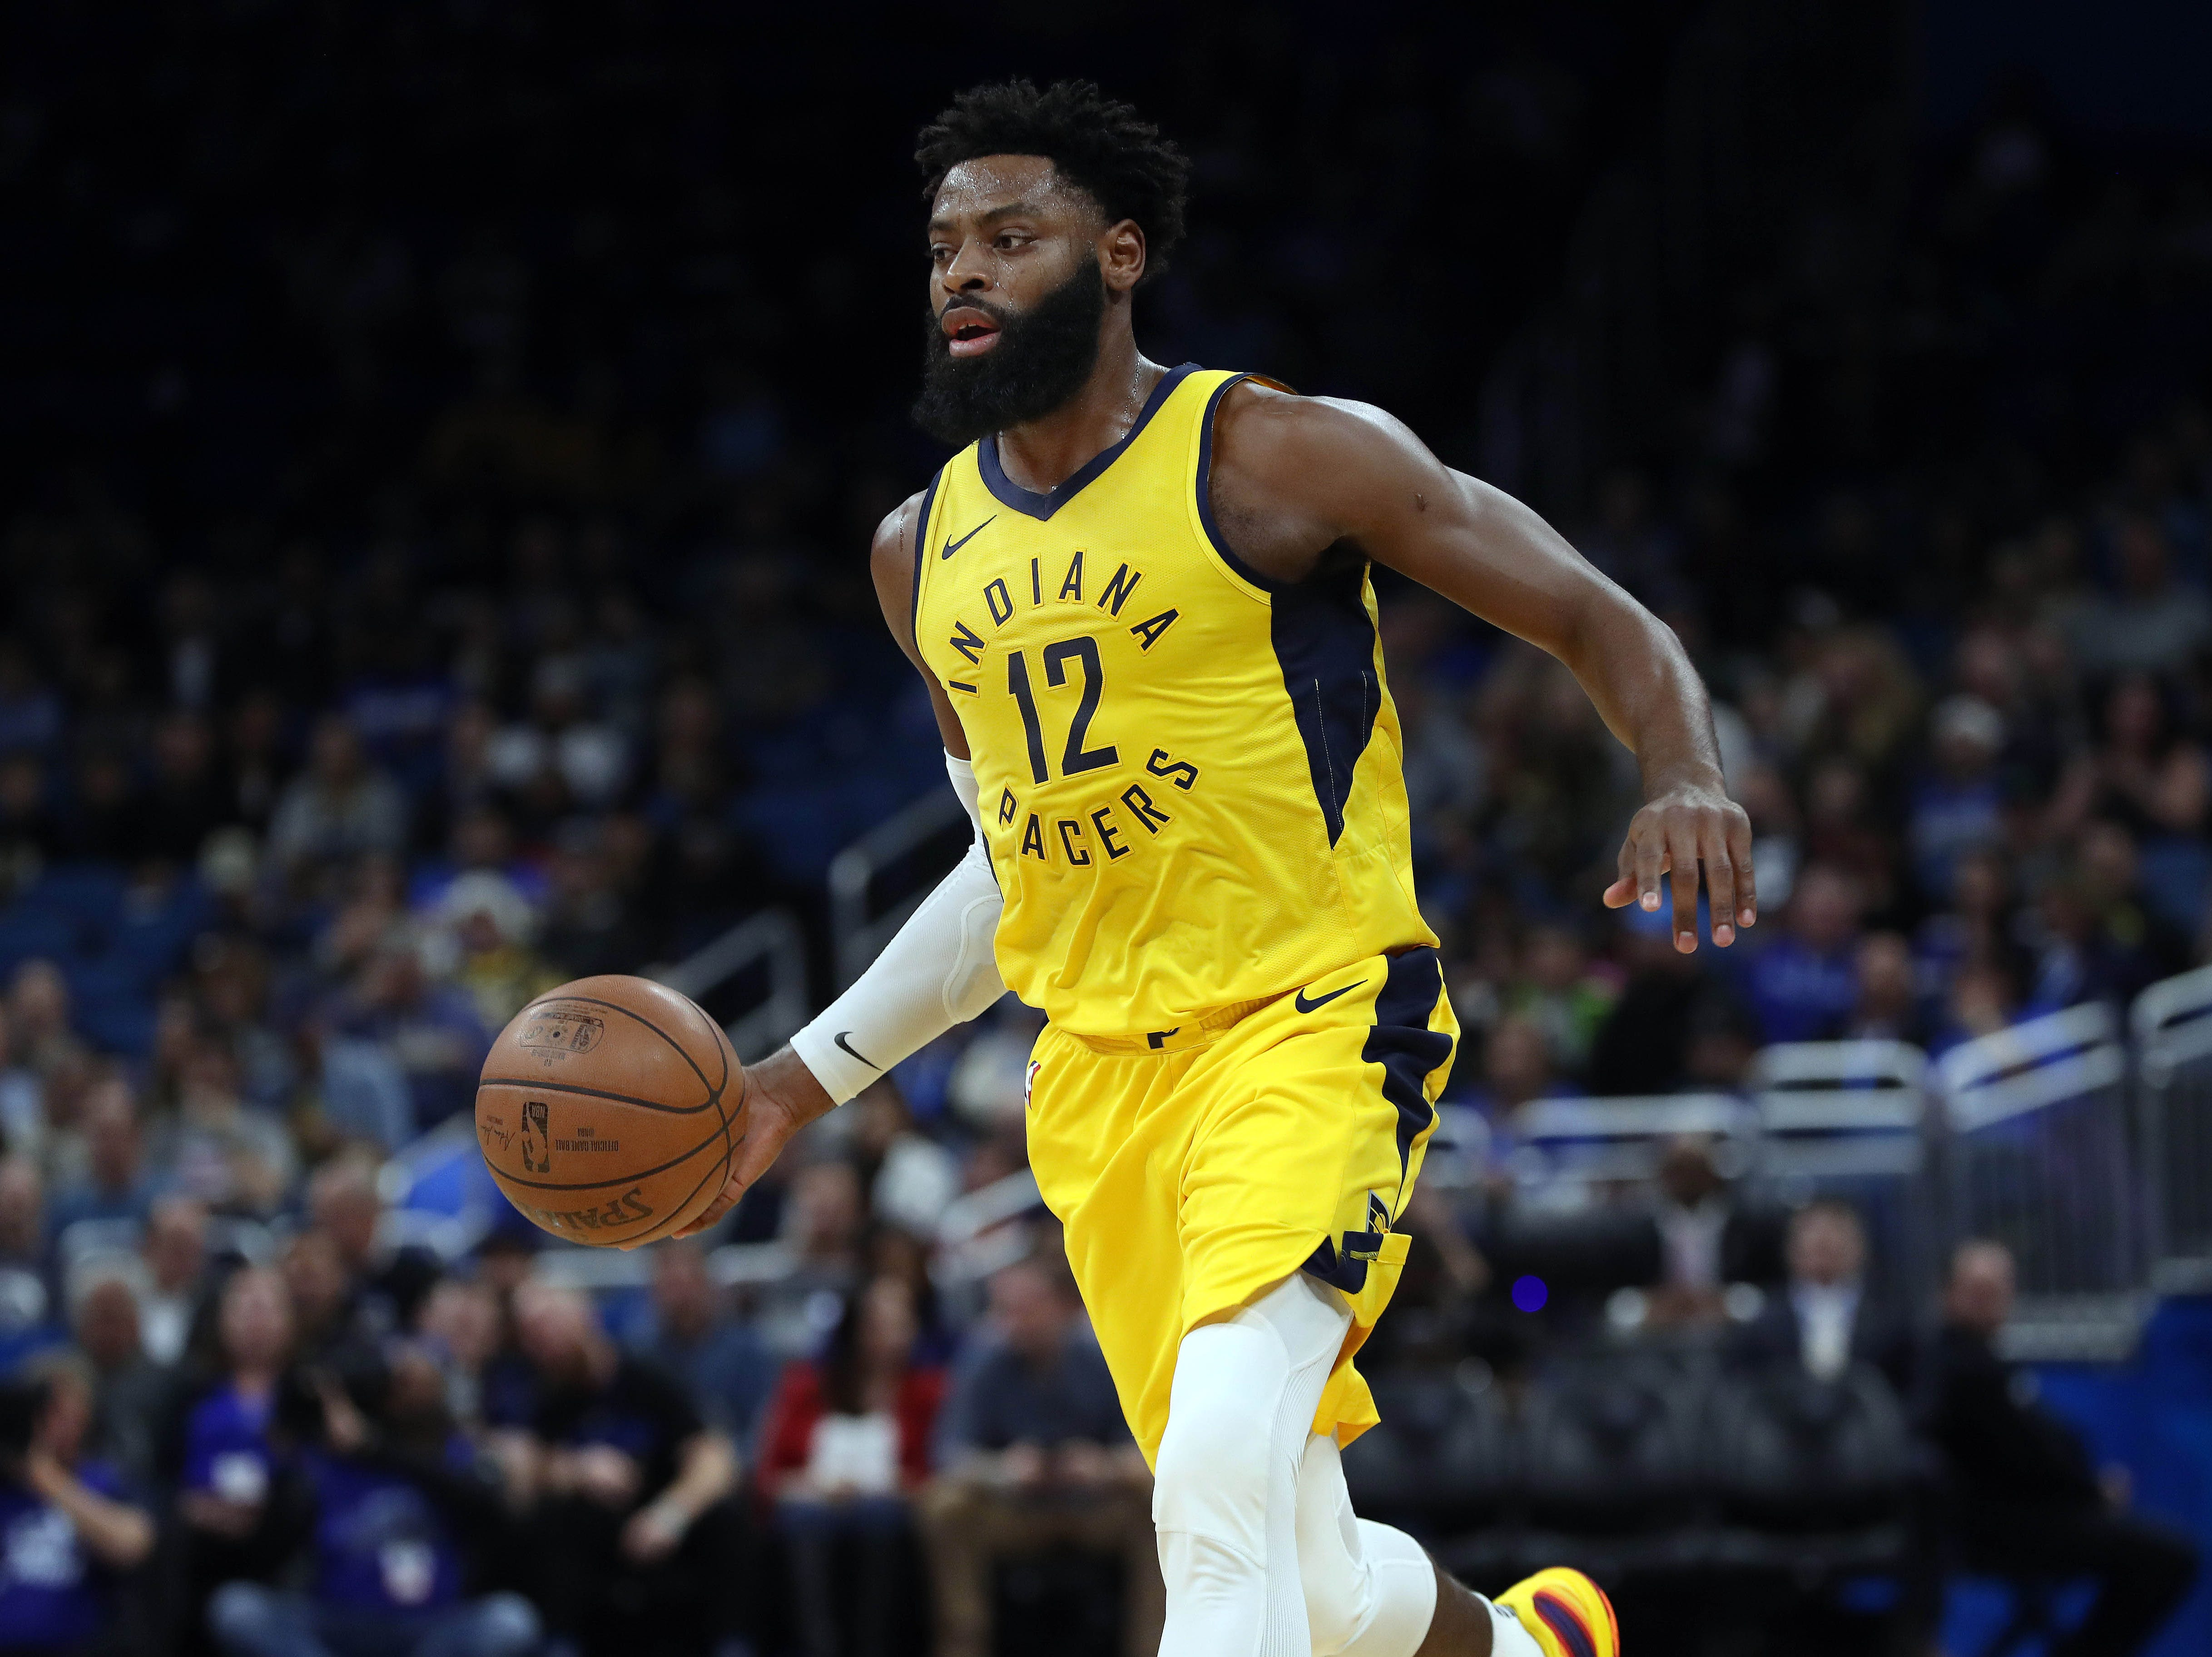 wDec 7, 2018; Orlando, FL, USA; Indiana Pacers guard Tyreke Evans (12) drives to the basket against the Orlando Magic during the first quarter at Amway Center. Mandatory Credit: Kim Klement-USA TODAY Sports